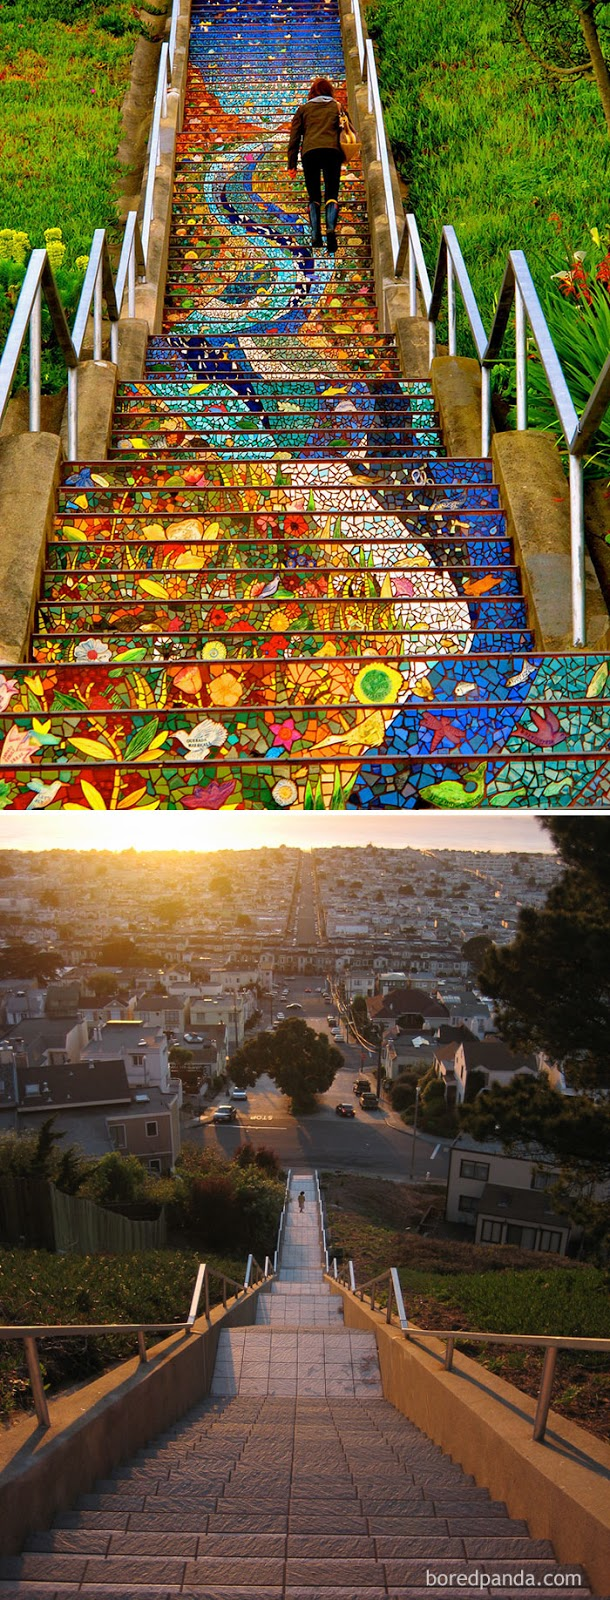 10+ Incredible Before & After Street Art Transformations That'll Make You Say Wow - 16th Avenue Tiled Steps, San Francisco, California